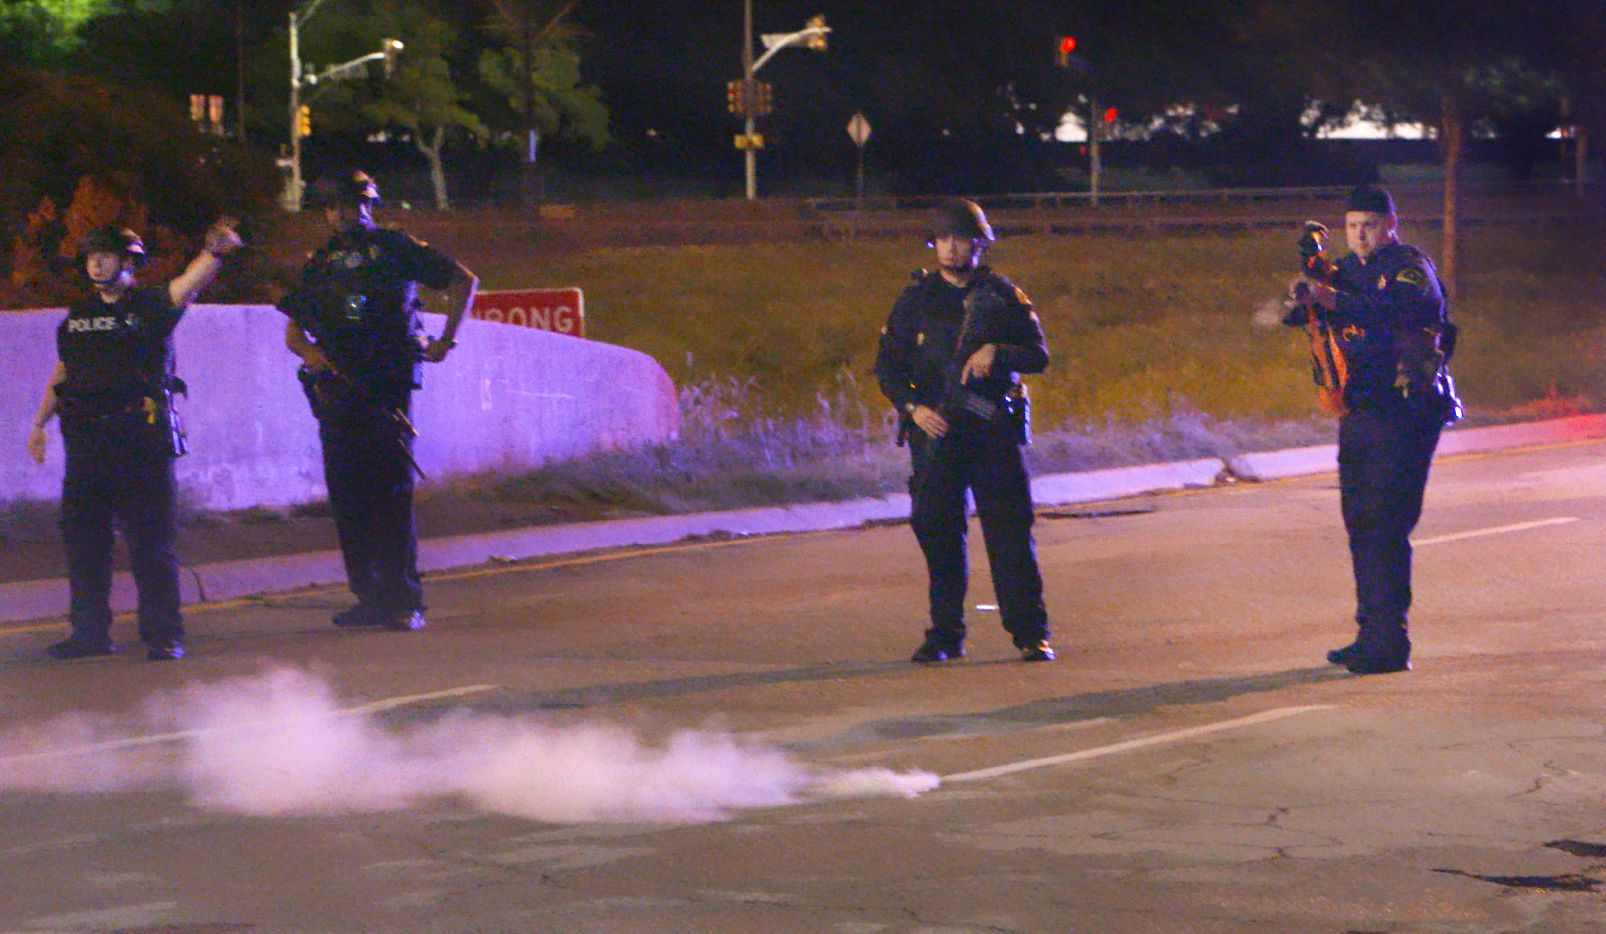 A Dallas police officer fires pepper balls at a crowd during Monday night's protest against police brutality. The protest blocked traffic on Cadiz Street in Dallas. Community activists organized the rally to protest Officer Amber Guyger's killing of 26-year-old Botham Jean on Thursday night.